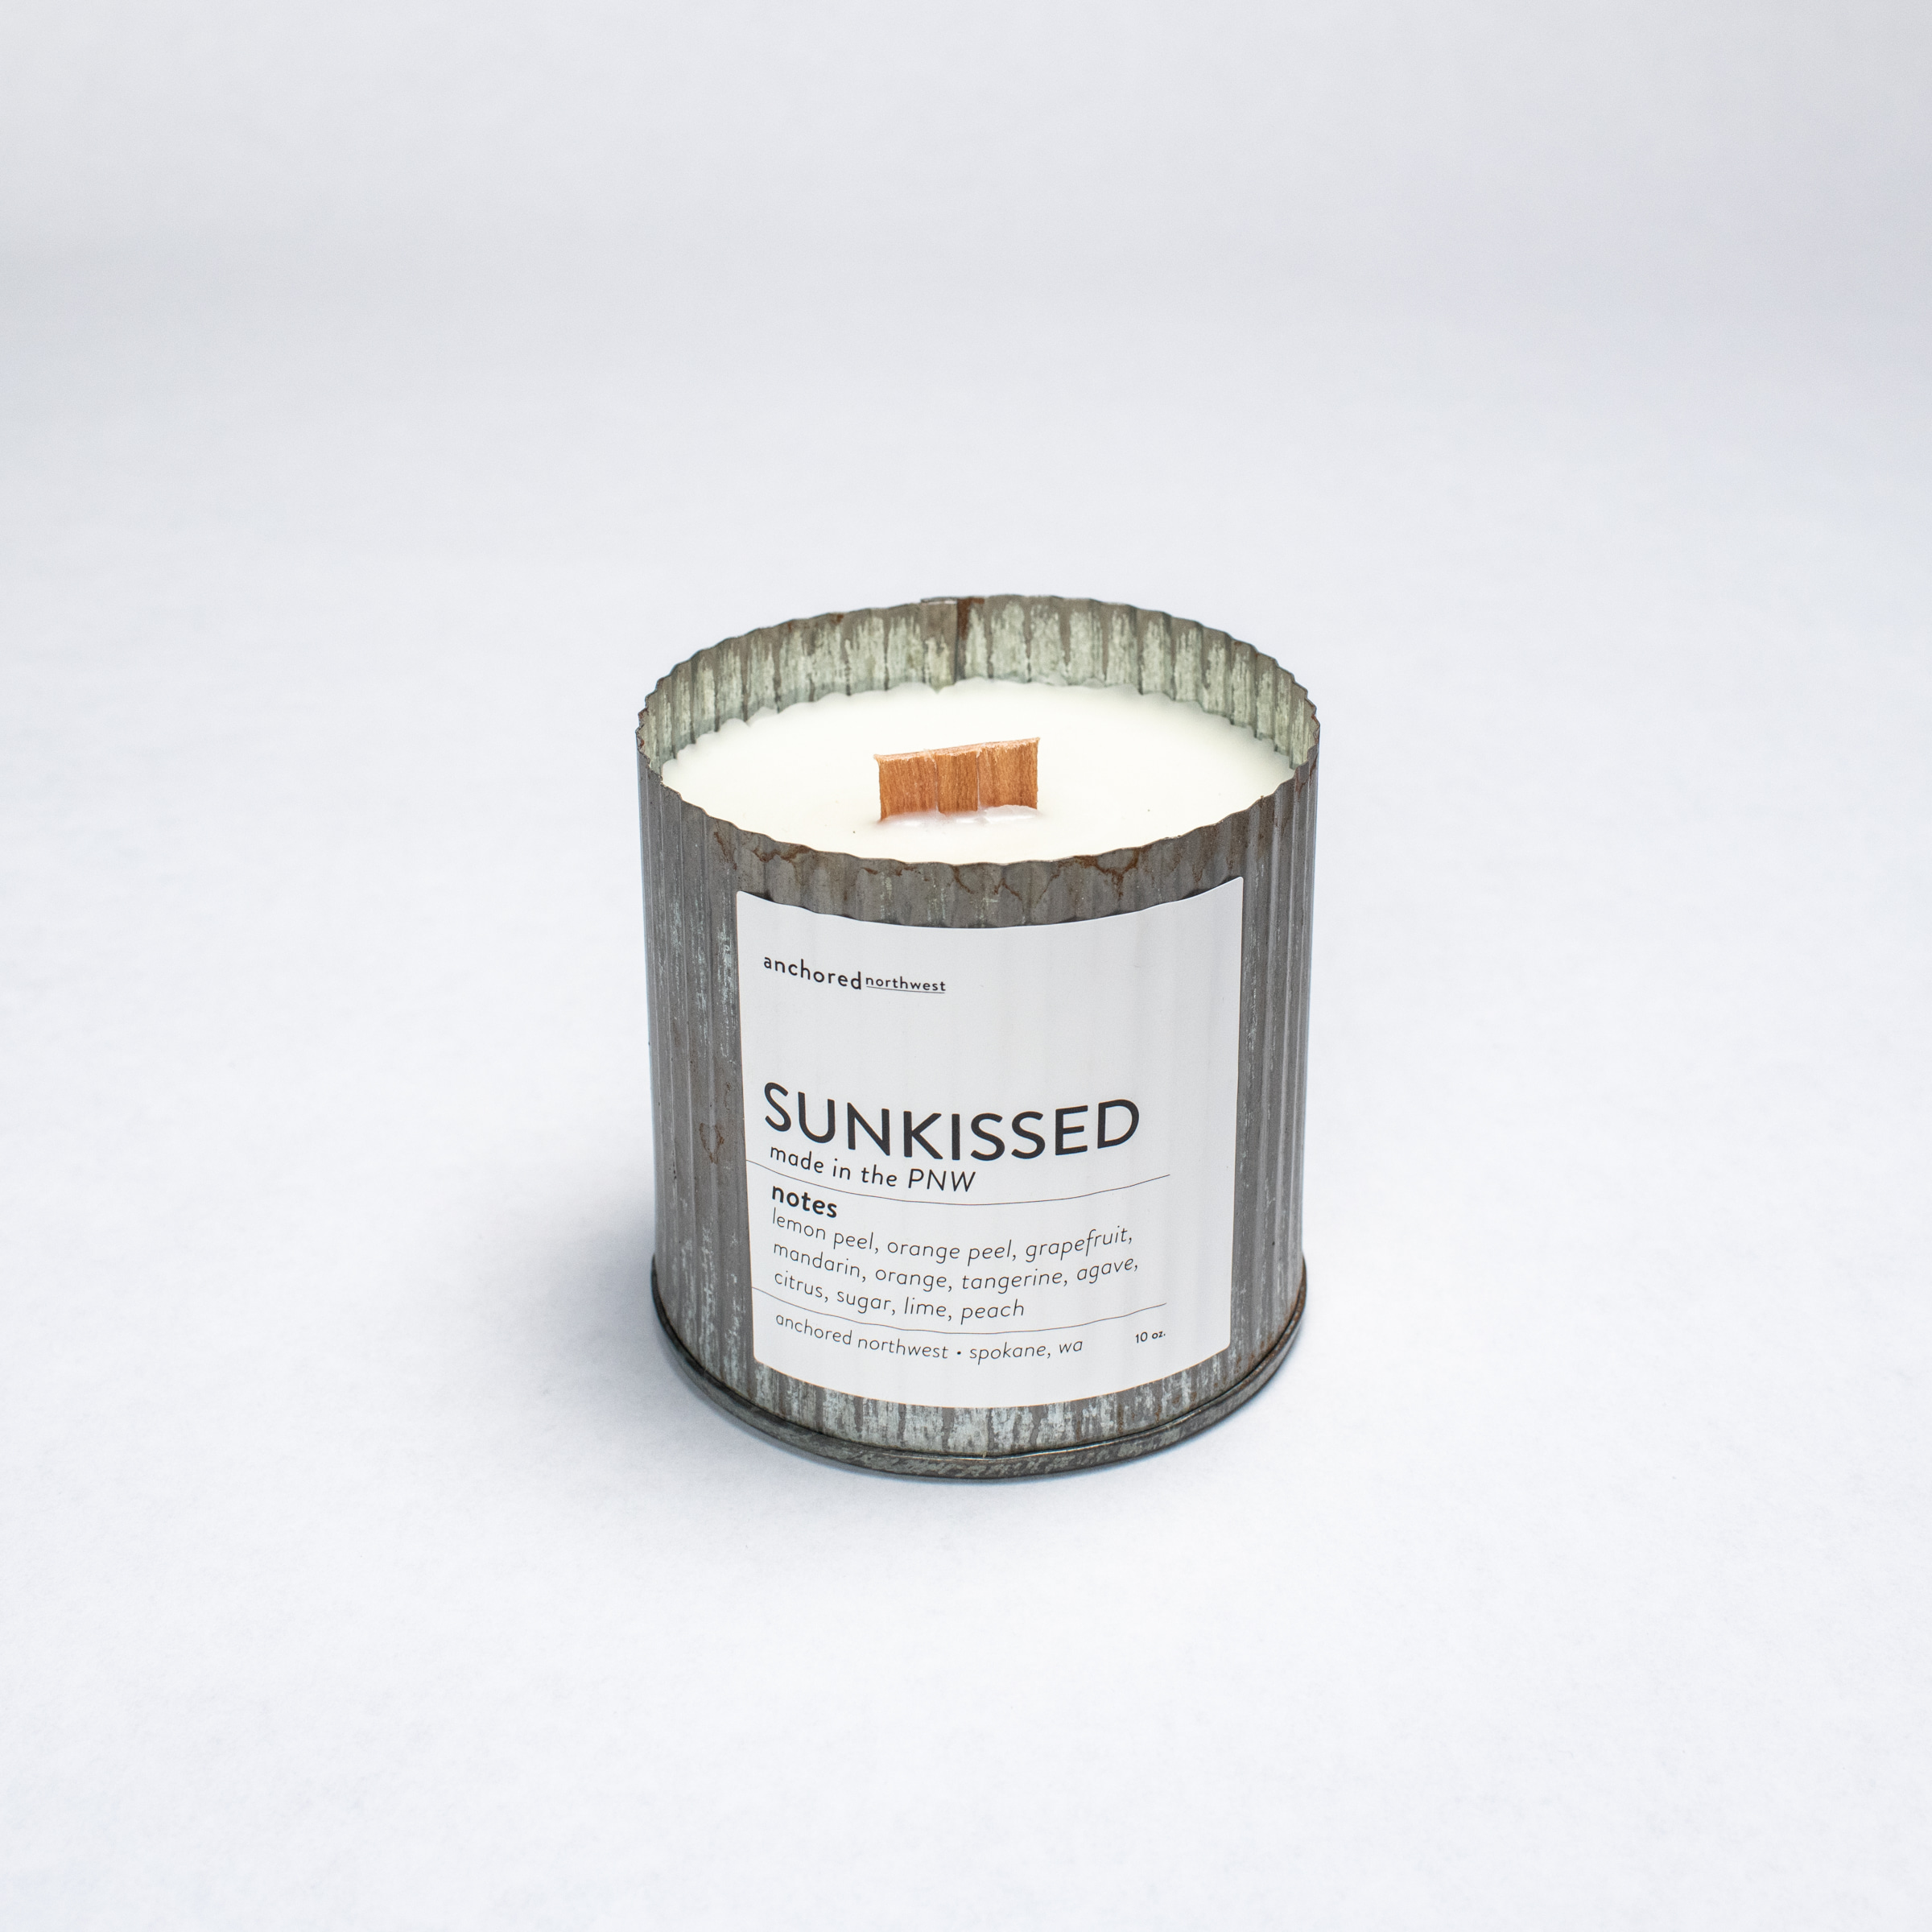 Sunkissed - Rustic Vintage Wood Wick Candle